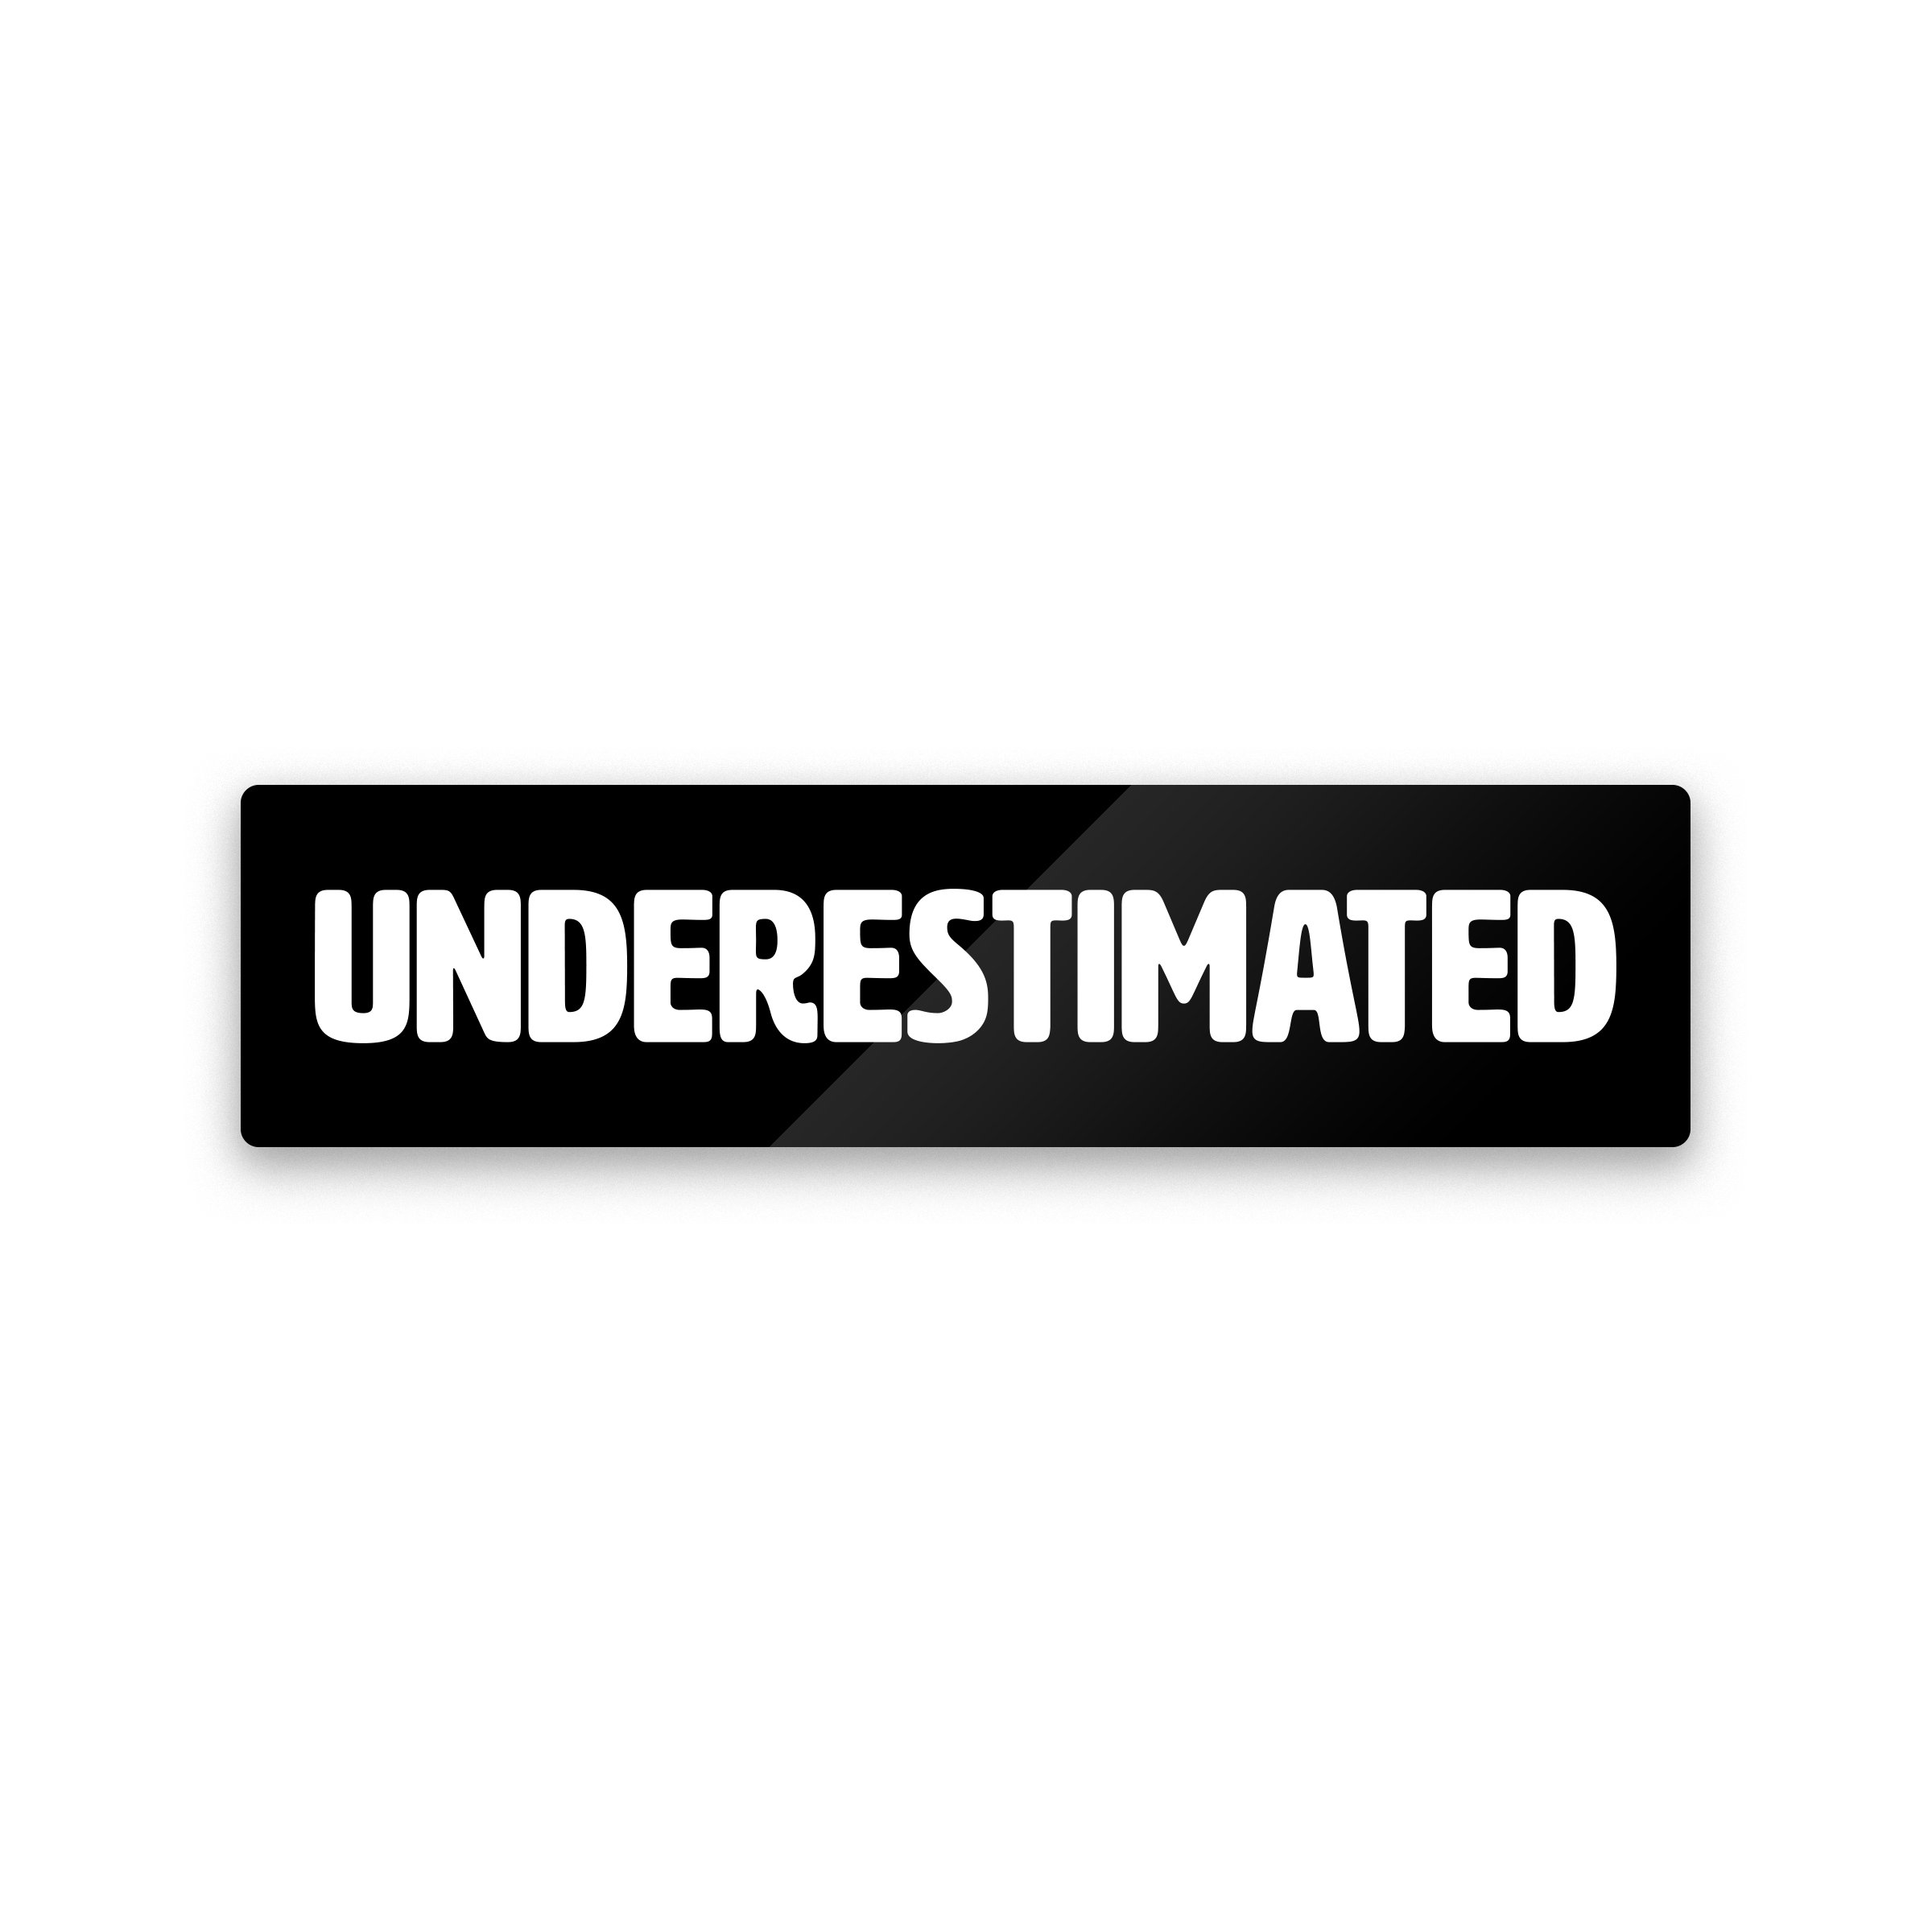 Underestimated Sticker (3-pack)